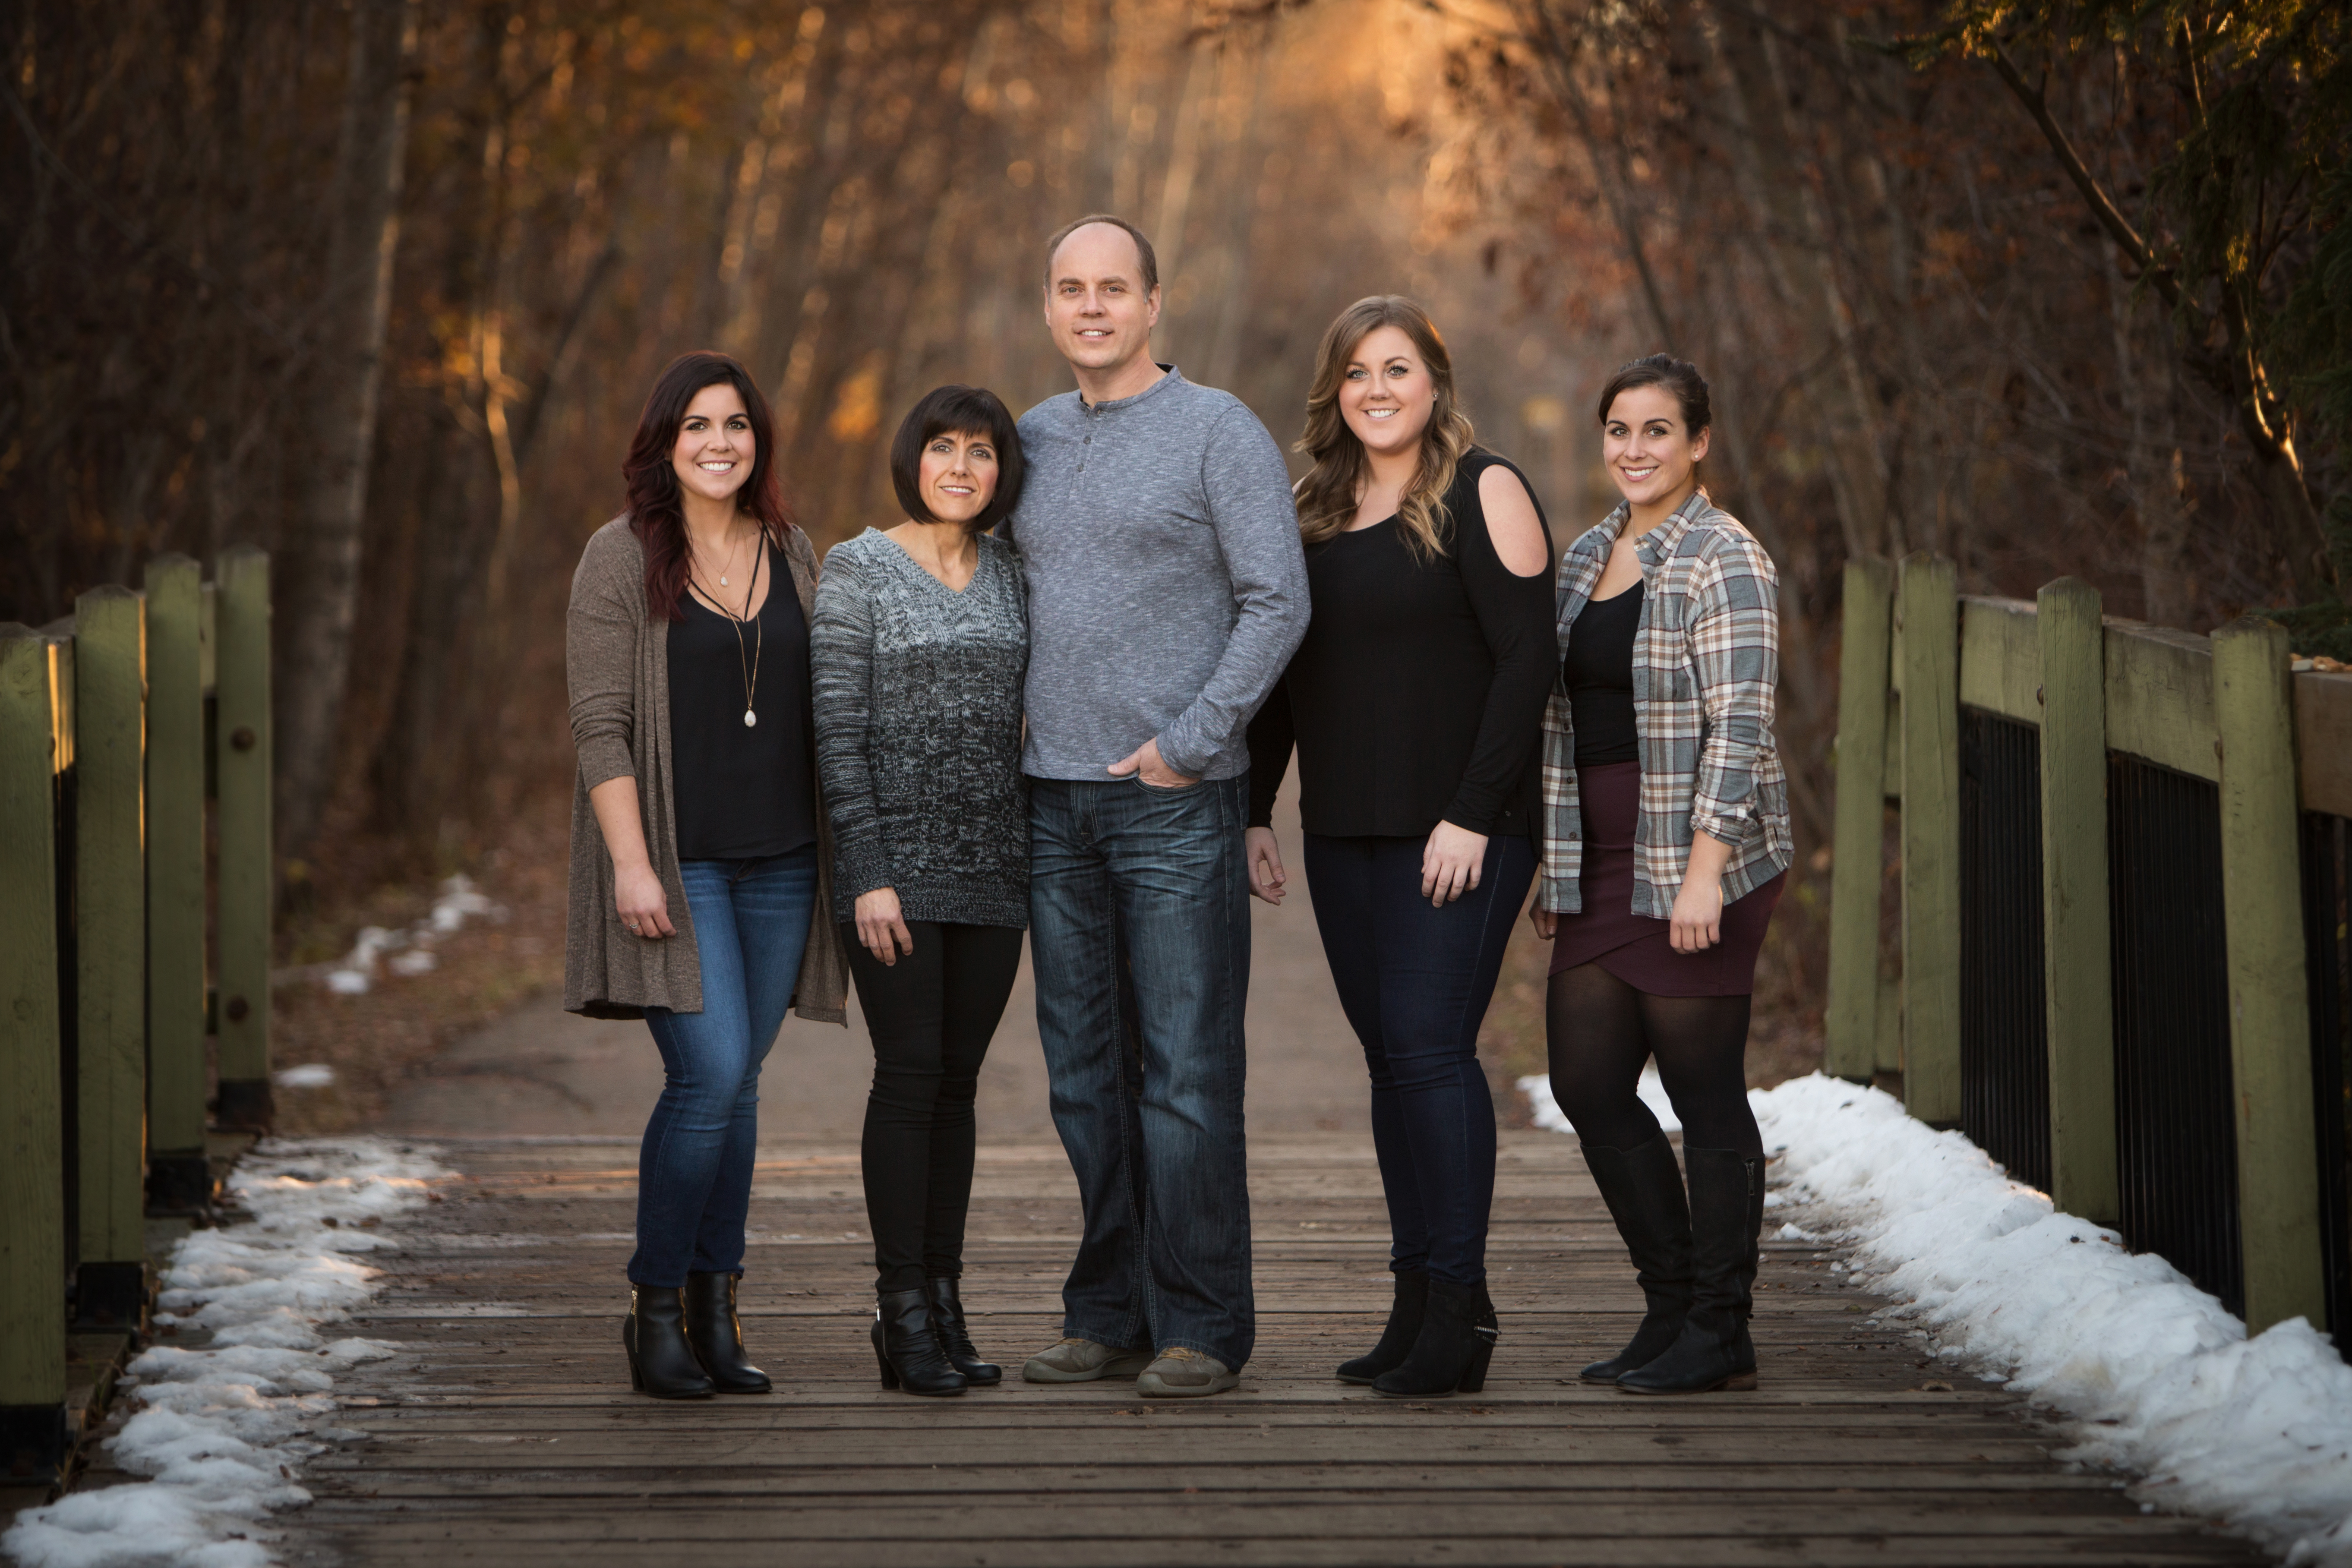 Family of five standing on a pedestrian bridge in Millcreek Ravine